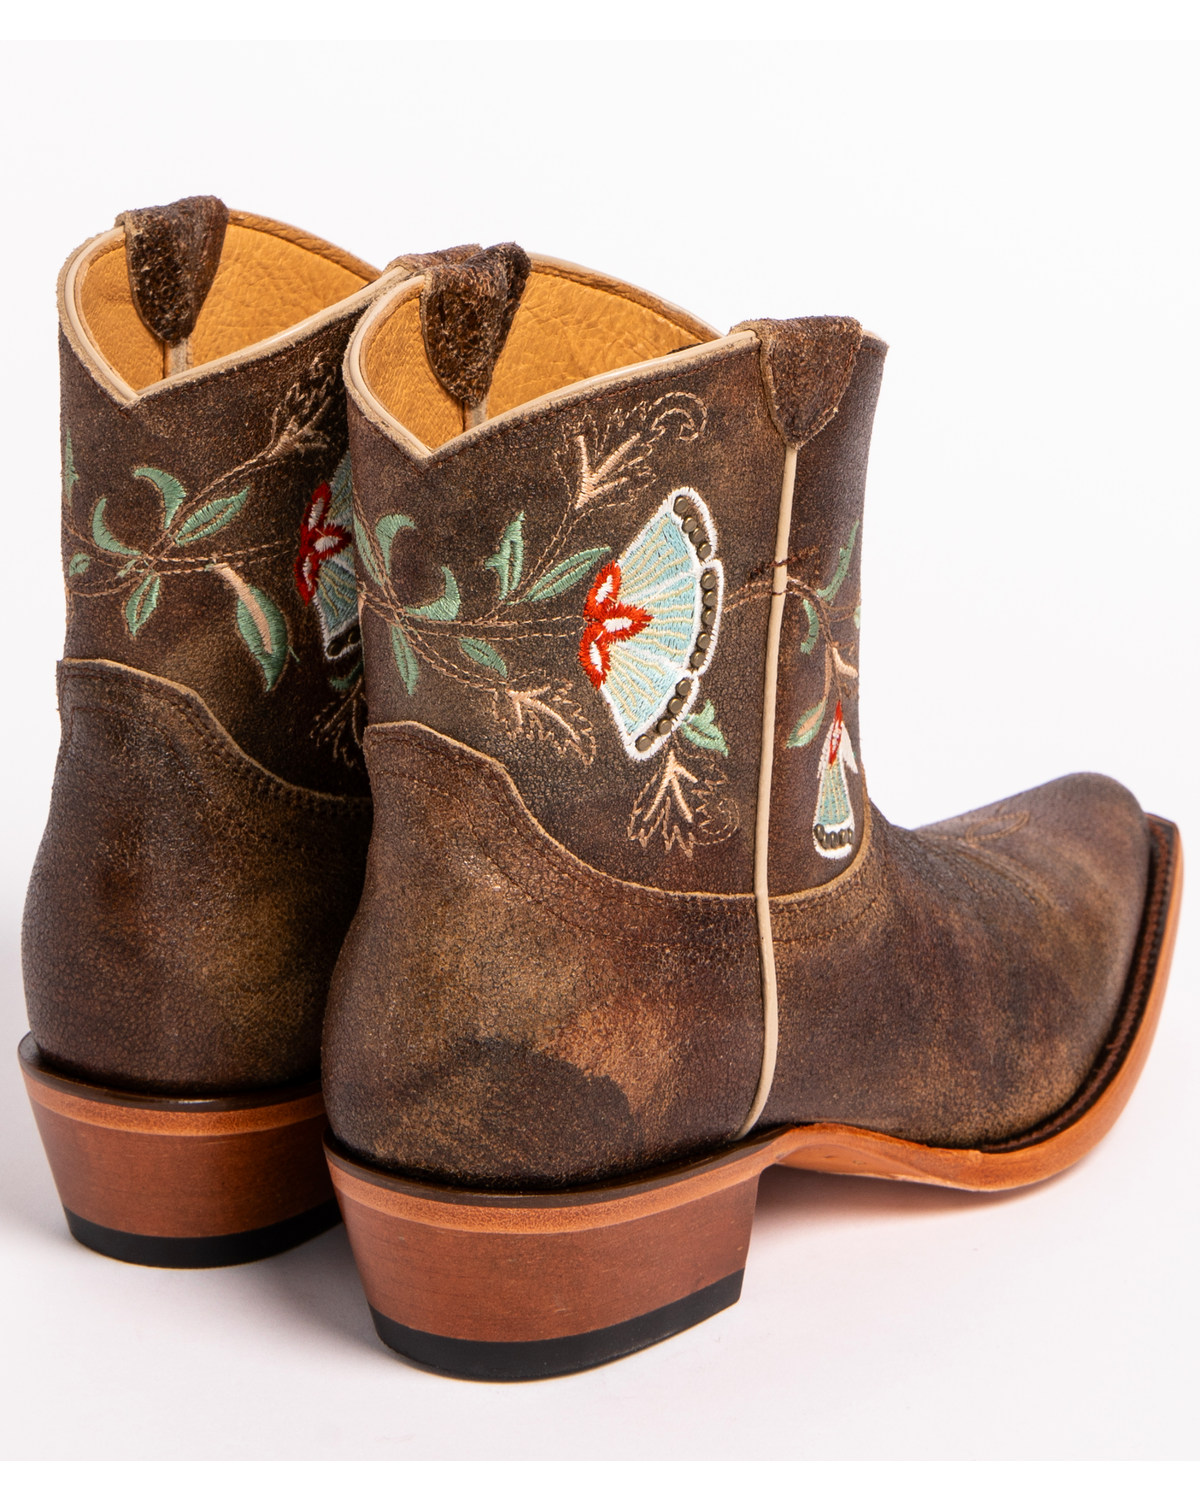 Shyanne 174 Women S Floral Embroidered Western Booties Boot